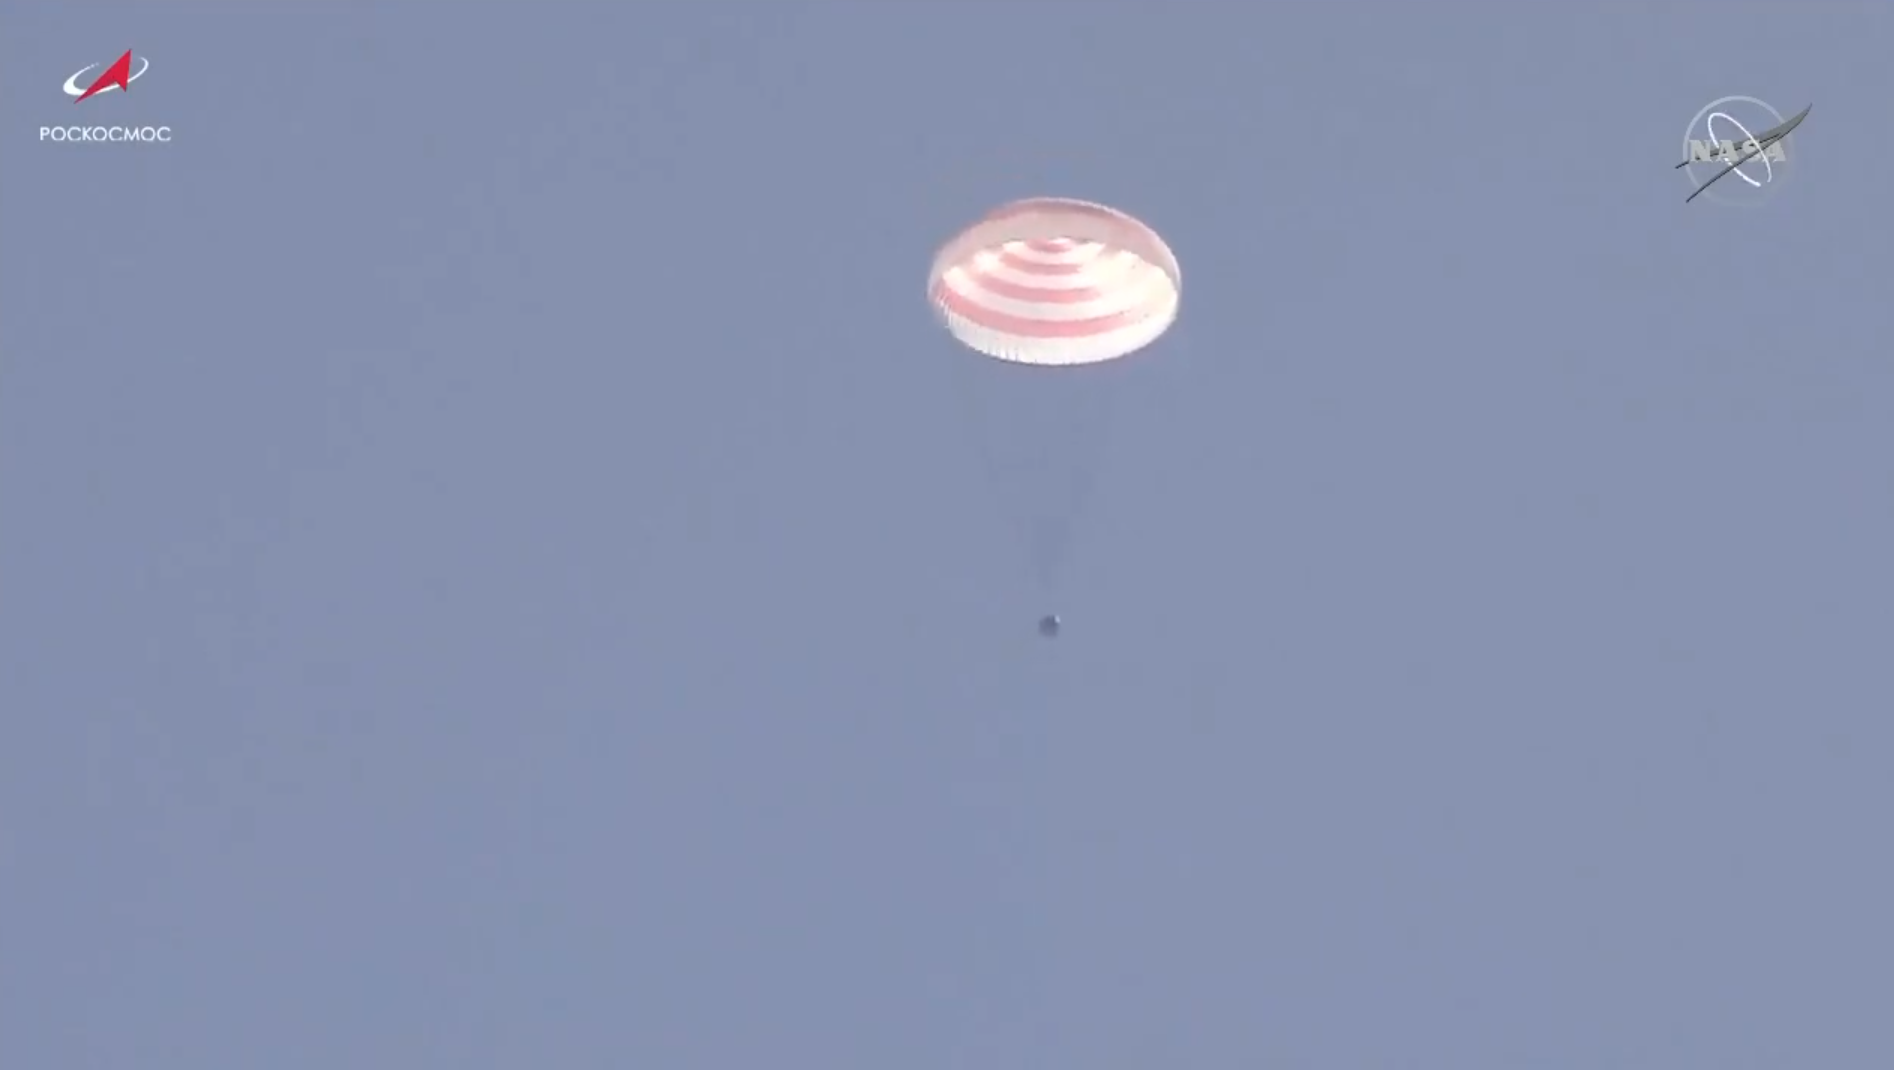 Soyuz MS-17 and its three crew members descend under a parachute toward the Kazakh Steppe in Kazakhstan. Credit: NASA